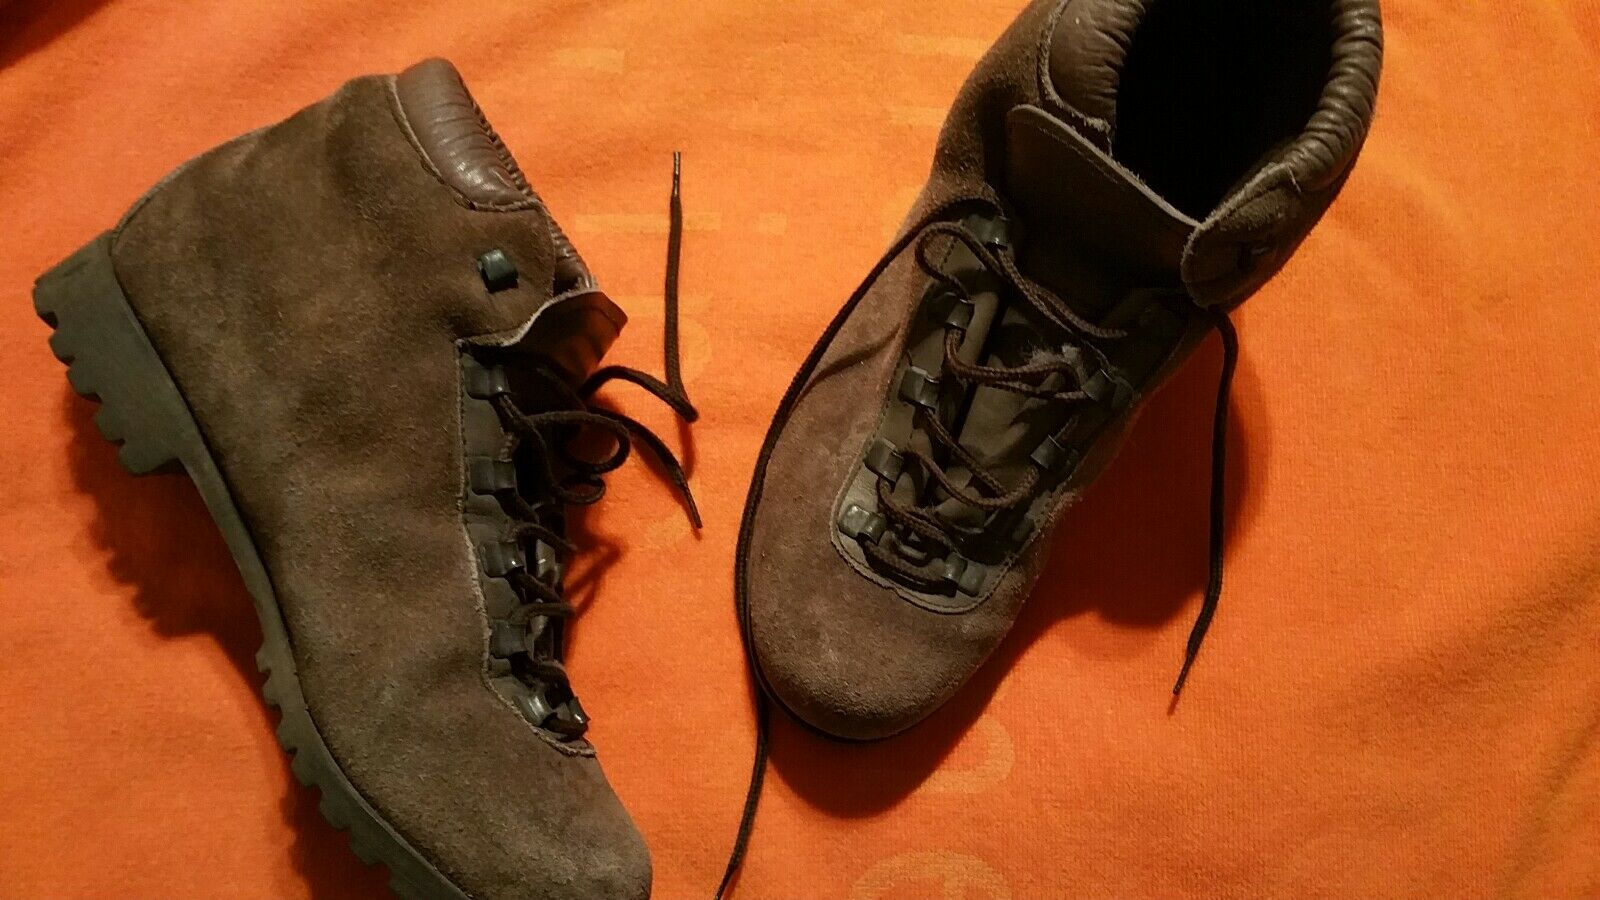 DUNHAM TYROLEANS HIKING SUEDE BOOT size 9.5N MADE IN ITALY VINTAGE